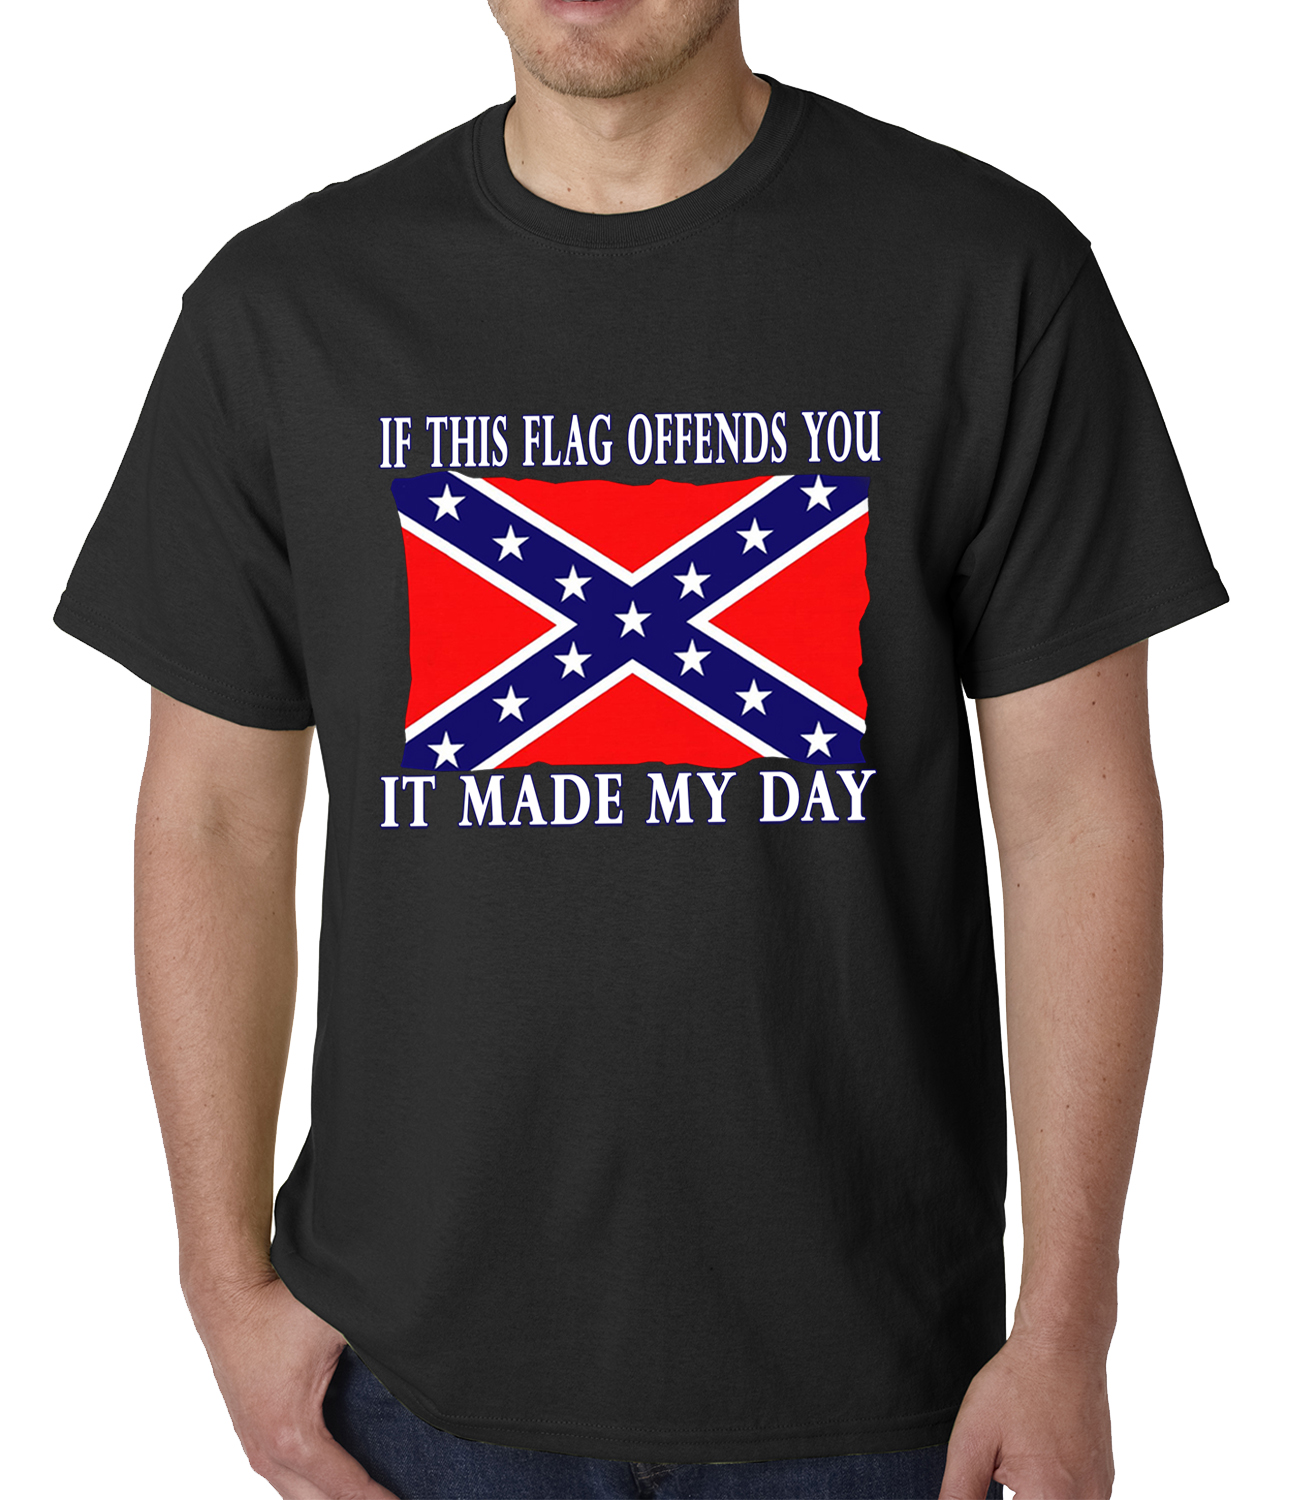 Rebel flag clothing store